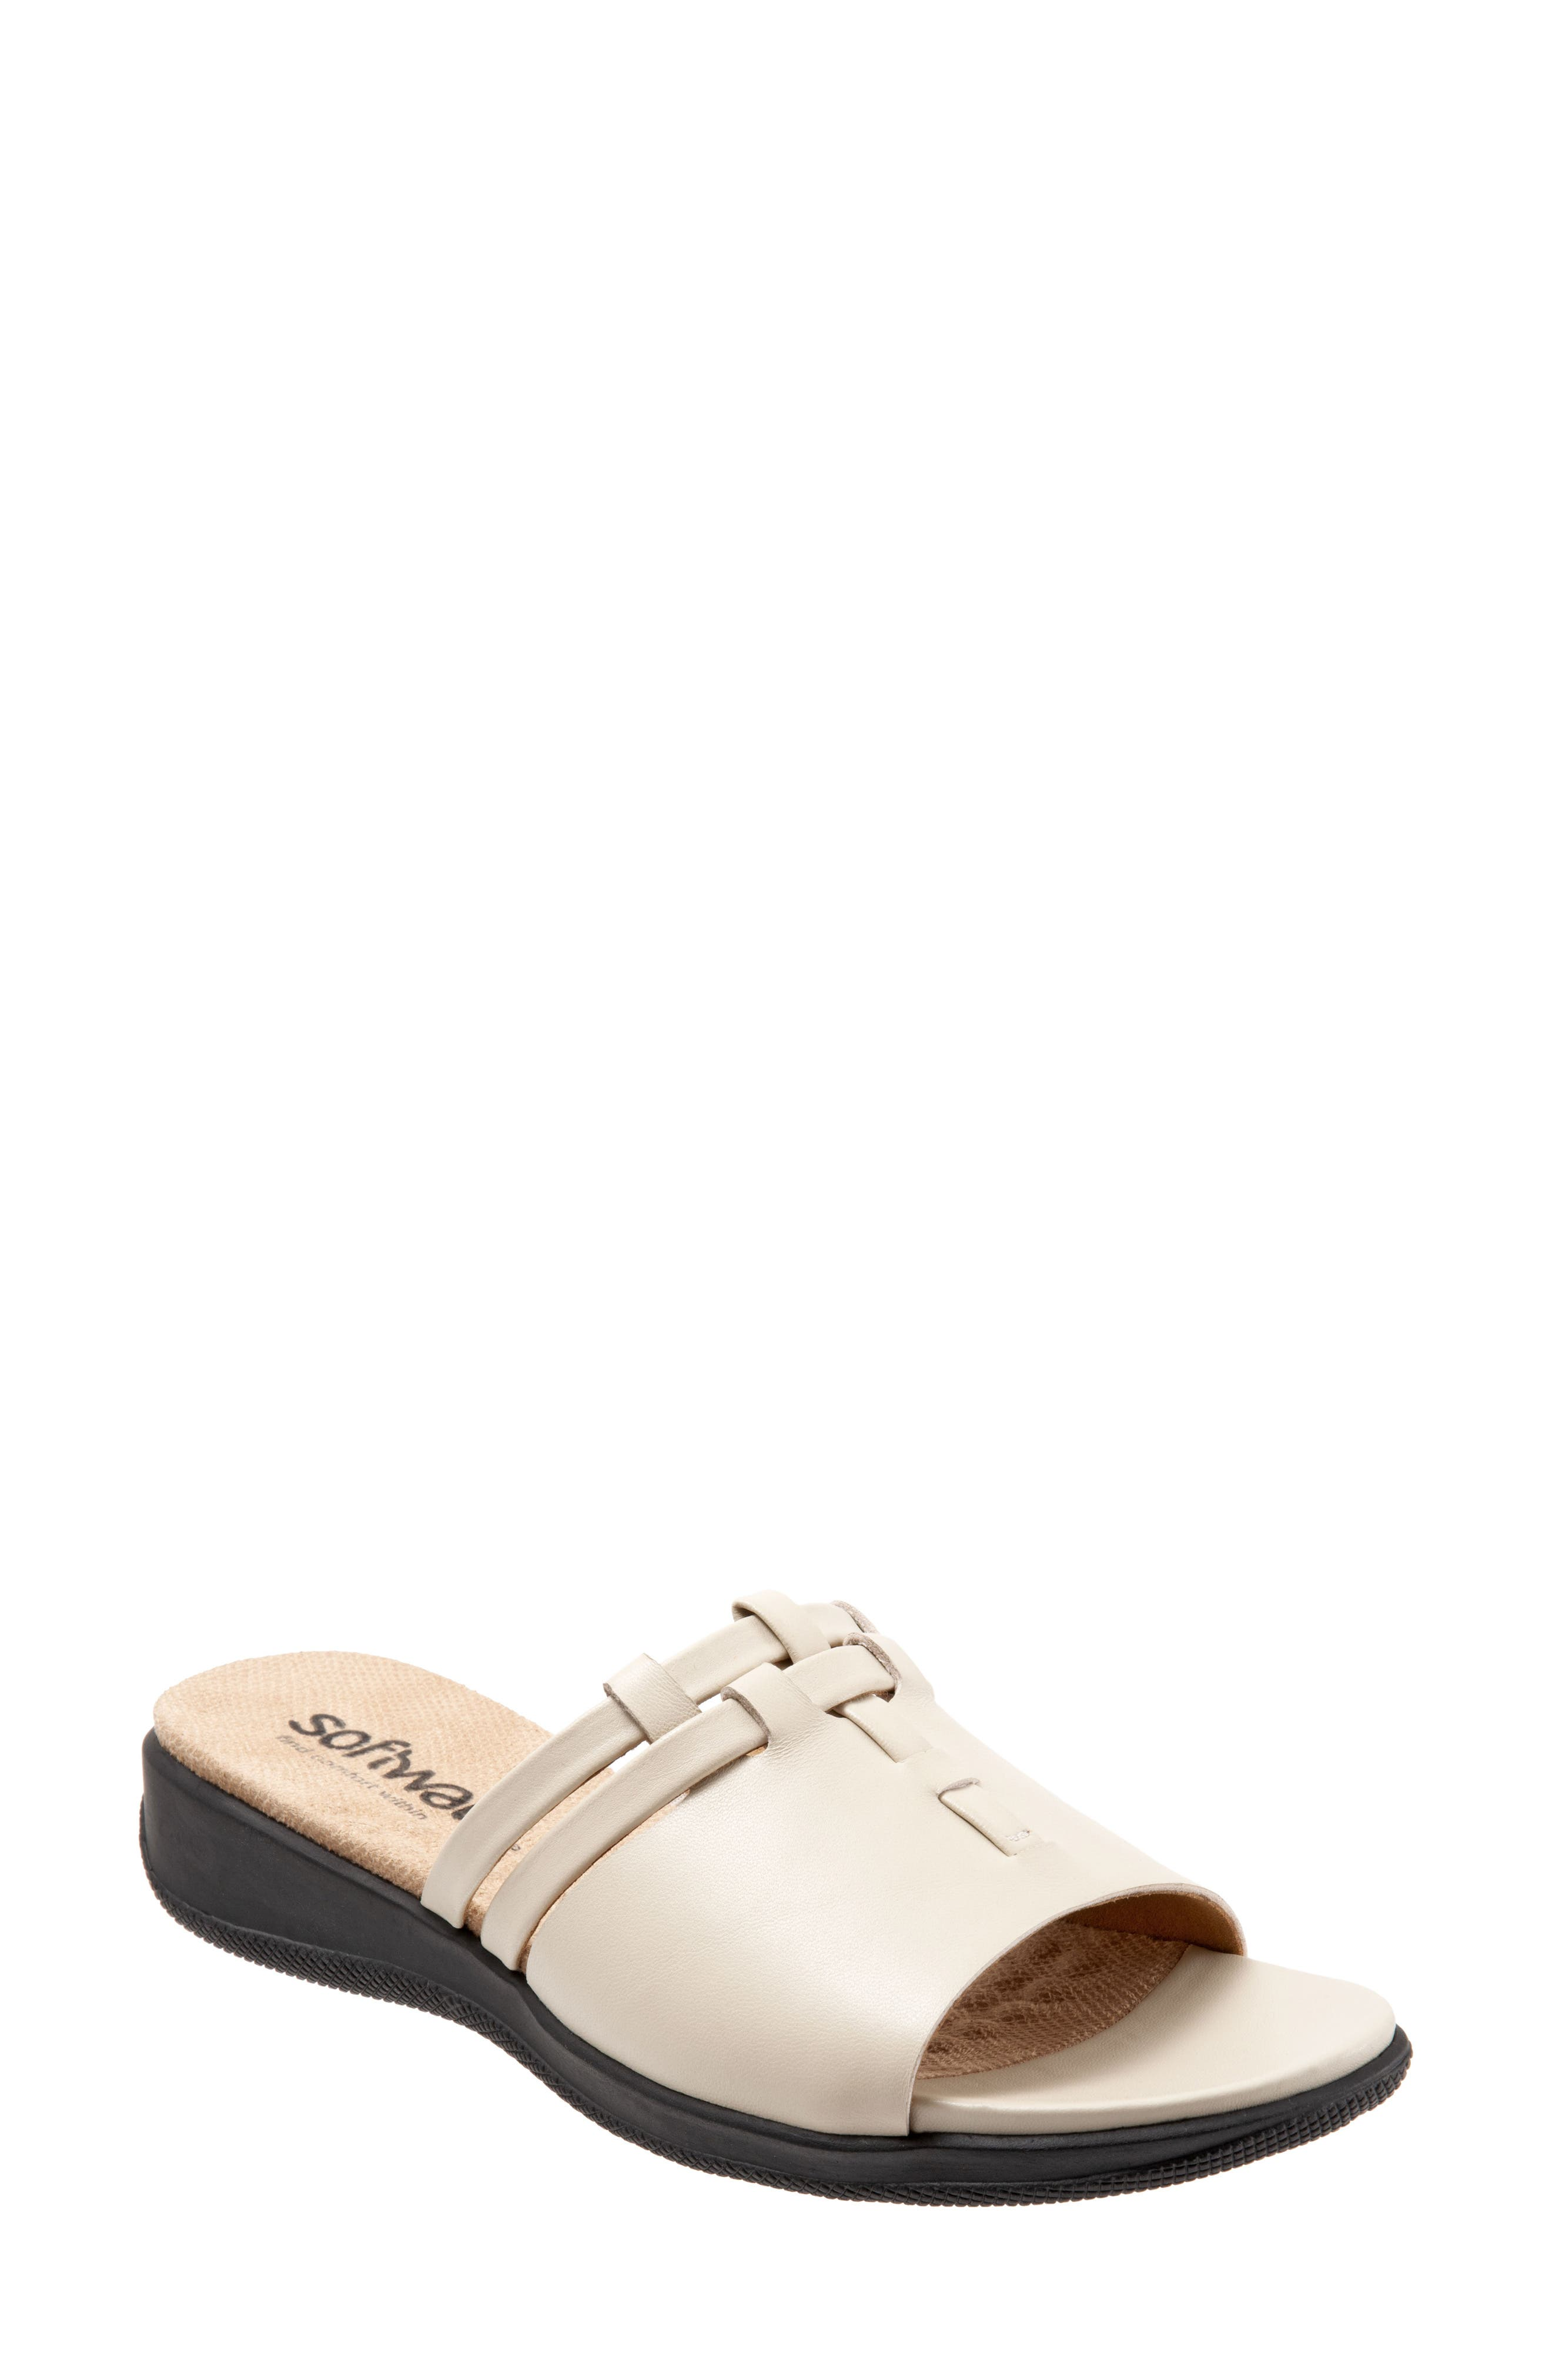 Interlocking straps climb the front and bridge the top of a leather slide sandal styled for comfort with a cushioned footbed wrapped in soft microfiber. Style Name: Softwalk Tahoma Woven Slide Sandal (Women). Style Number: 5812440 1. Available in stores.